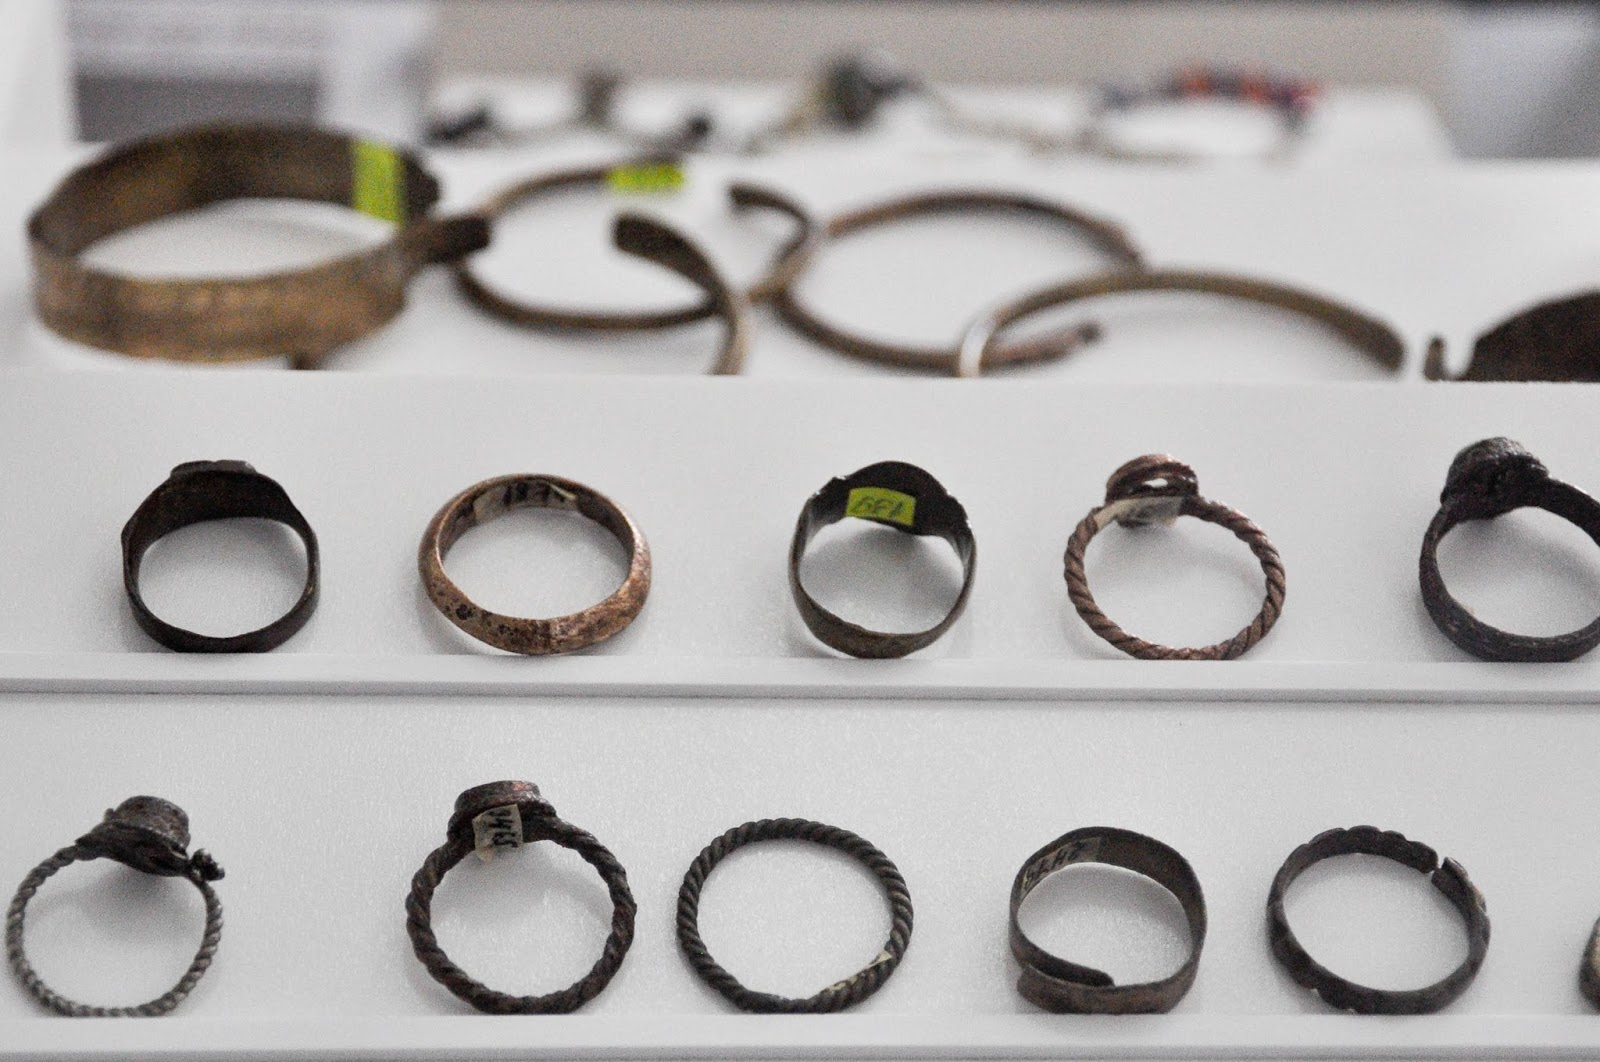 Rings and bracelets, The Museum, Pliska, Bulgaria